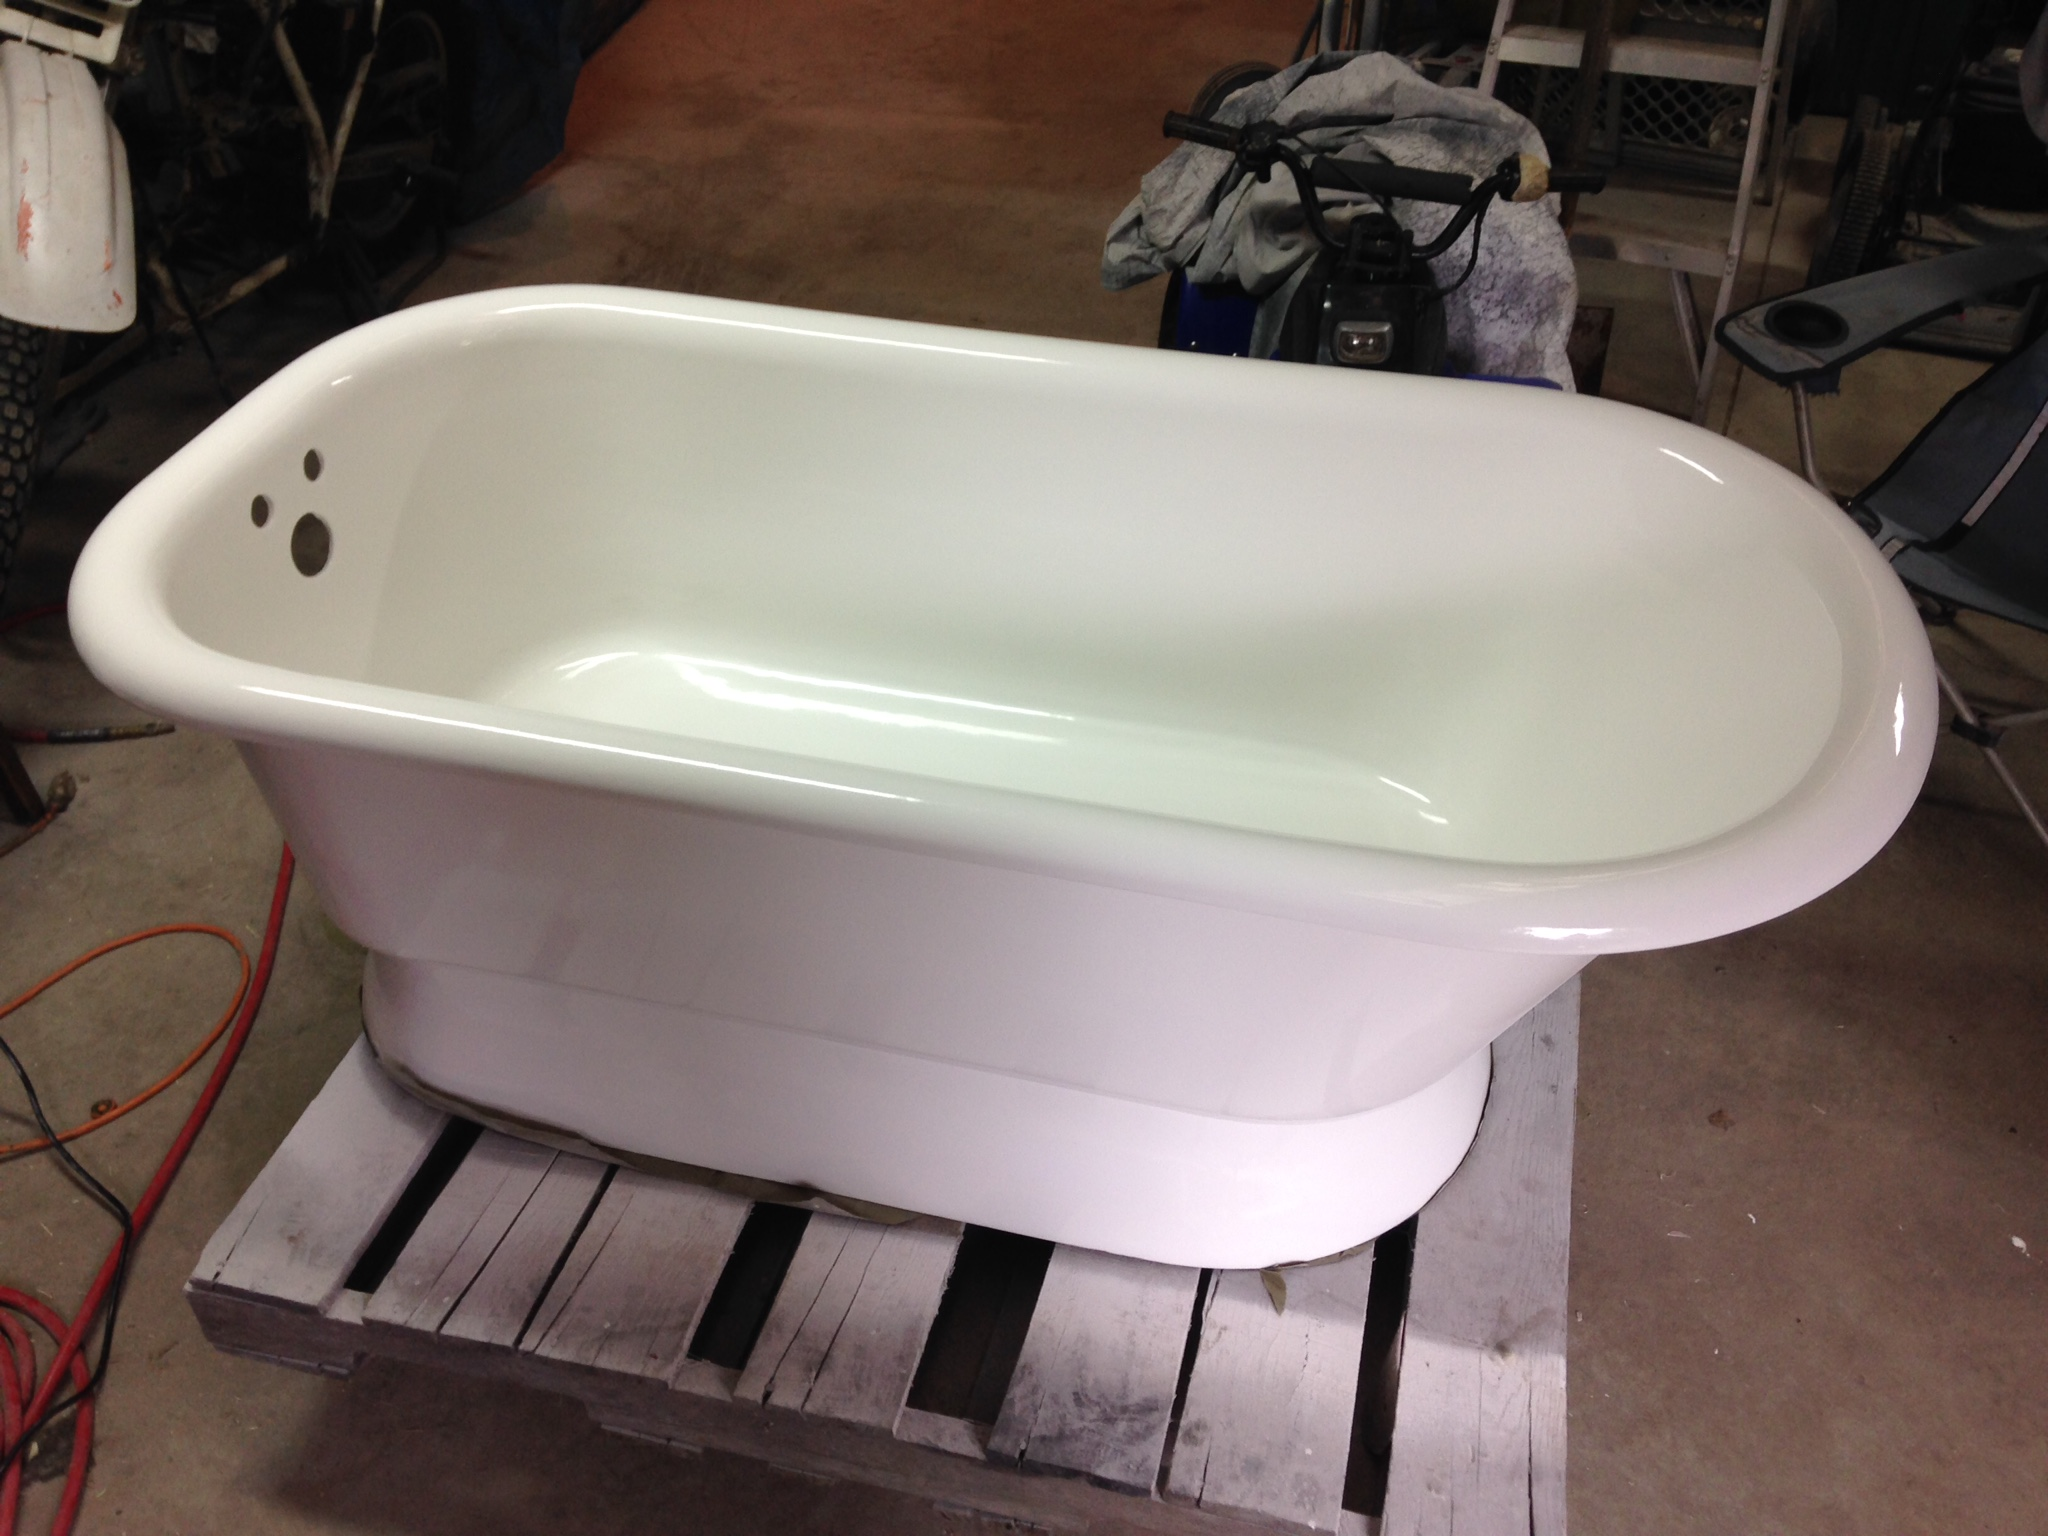 High Quality If Mr. Bathtub Indy Can Make This Tub Look Great...Imagine What He Can Do  To Yours!